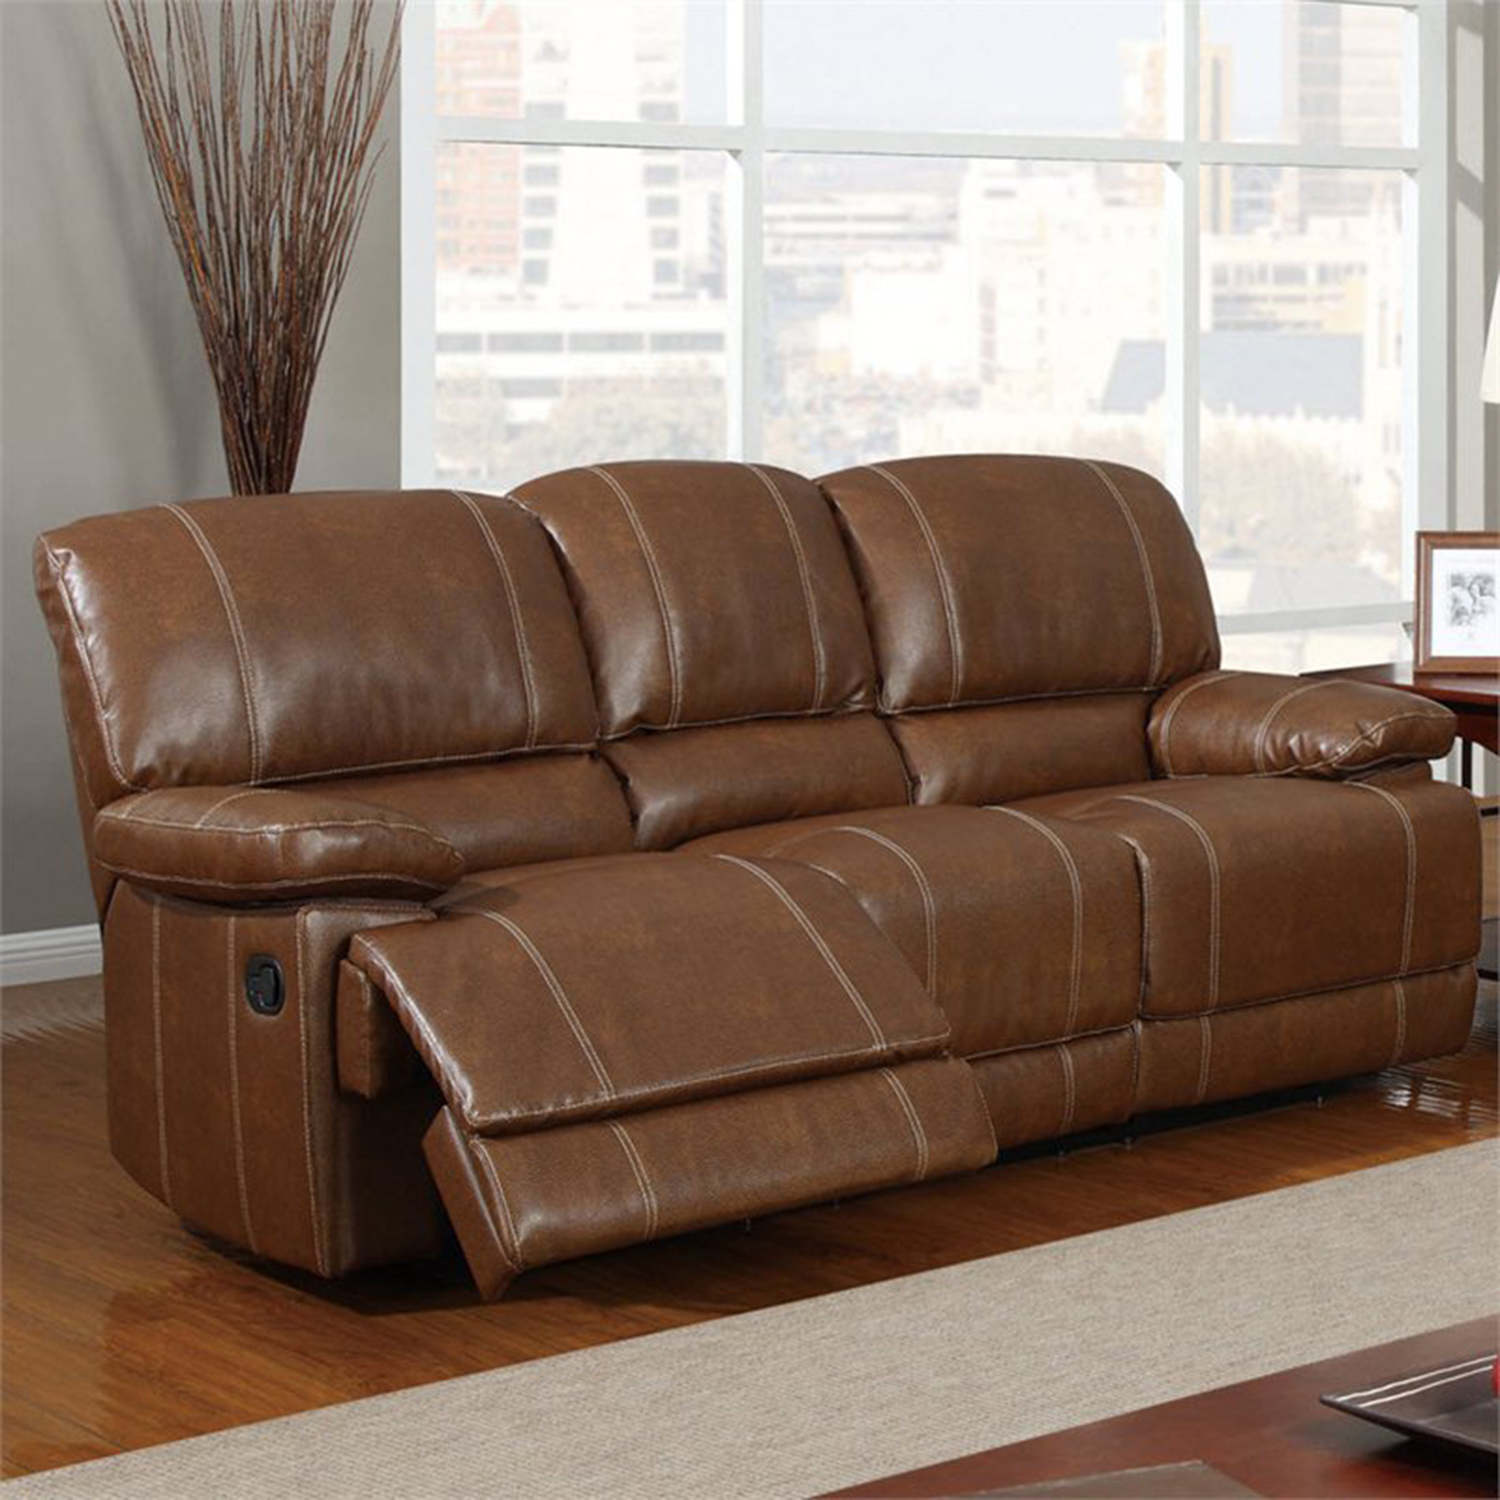 Rodeo Reclining Sofa in Brown Leather - GLO-U9963-RODEO-BROWN-R-S-M